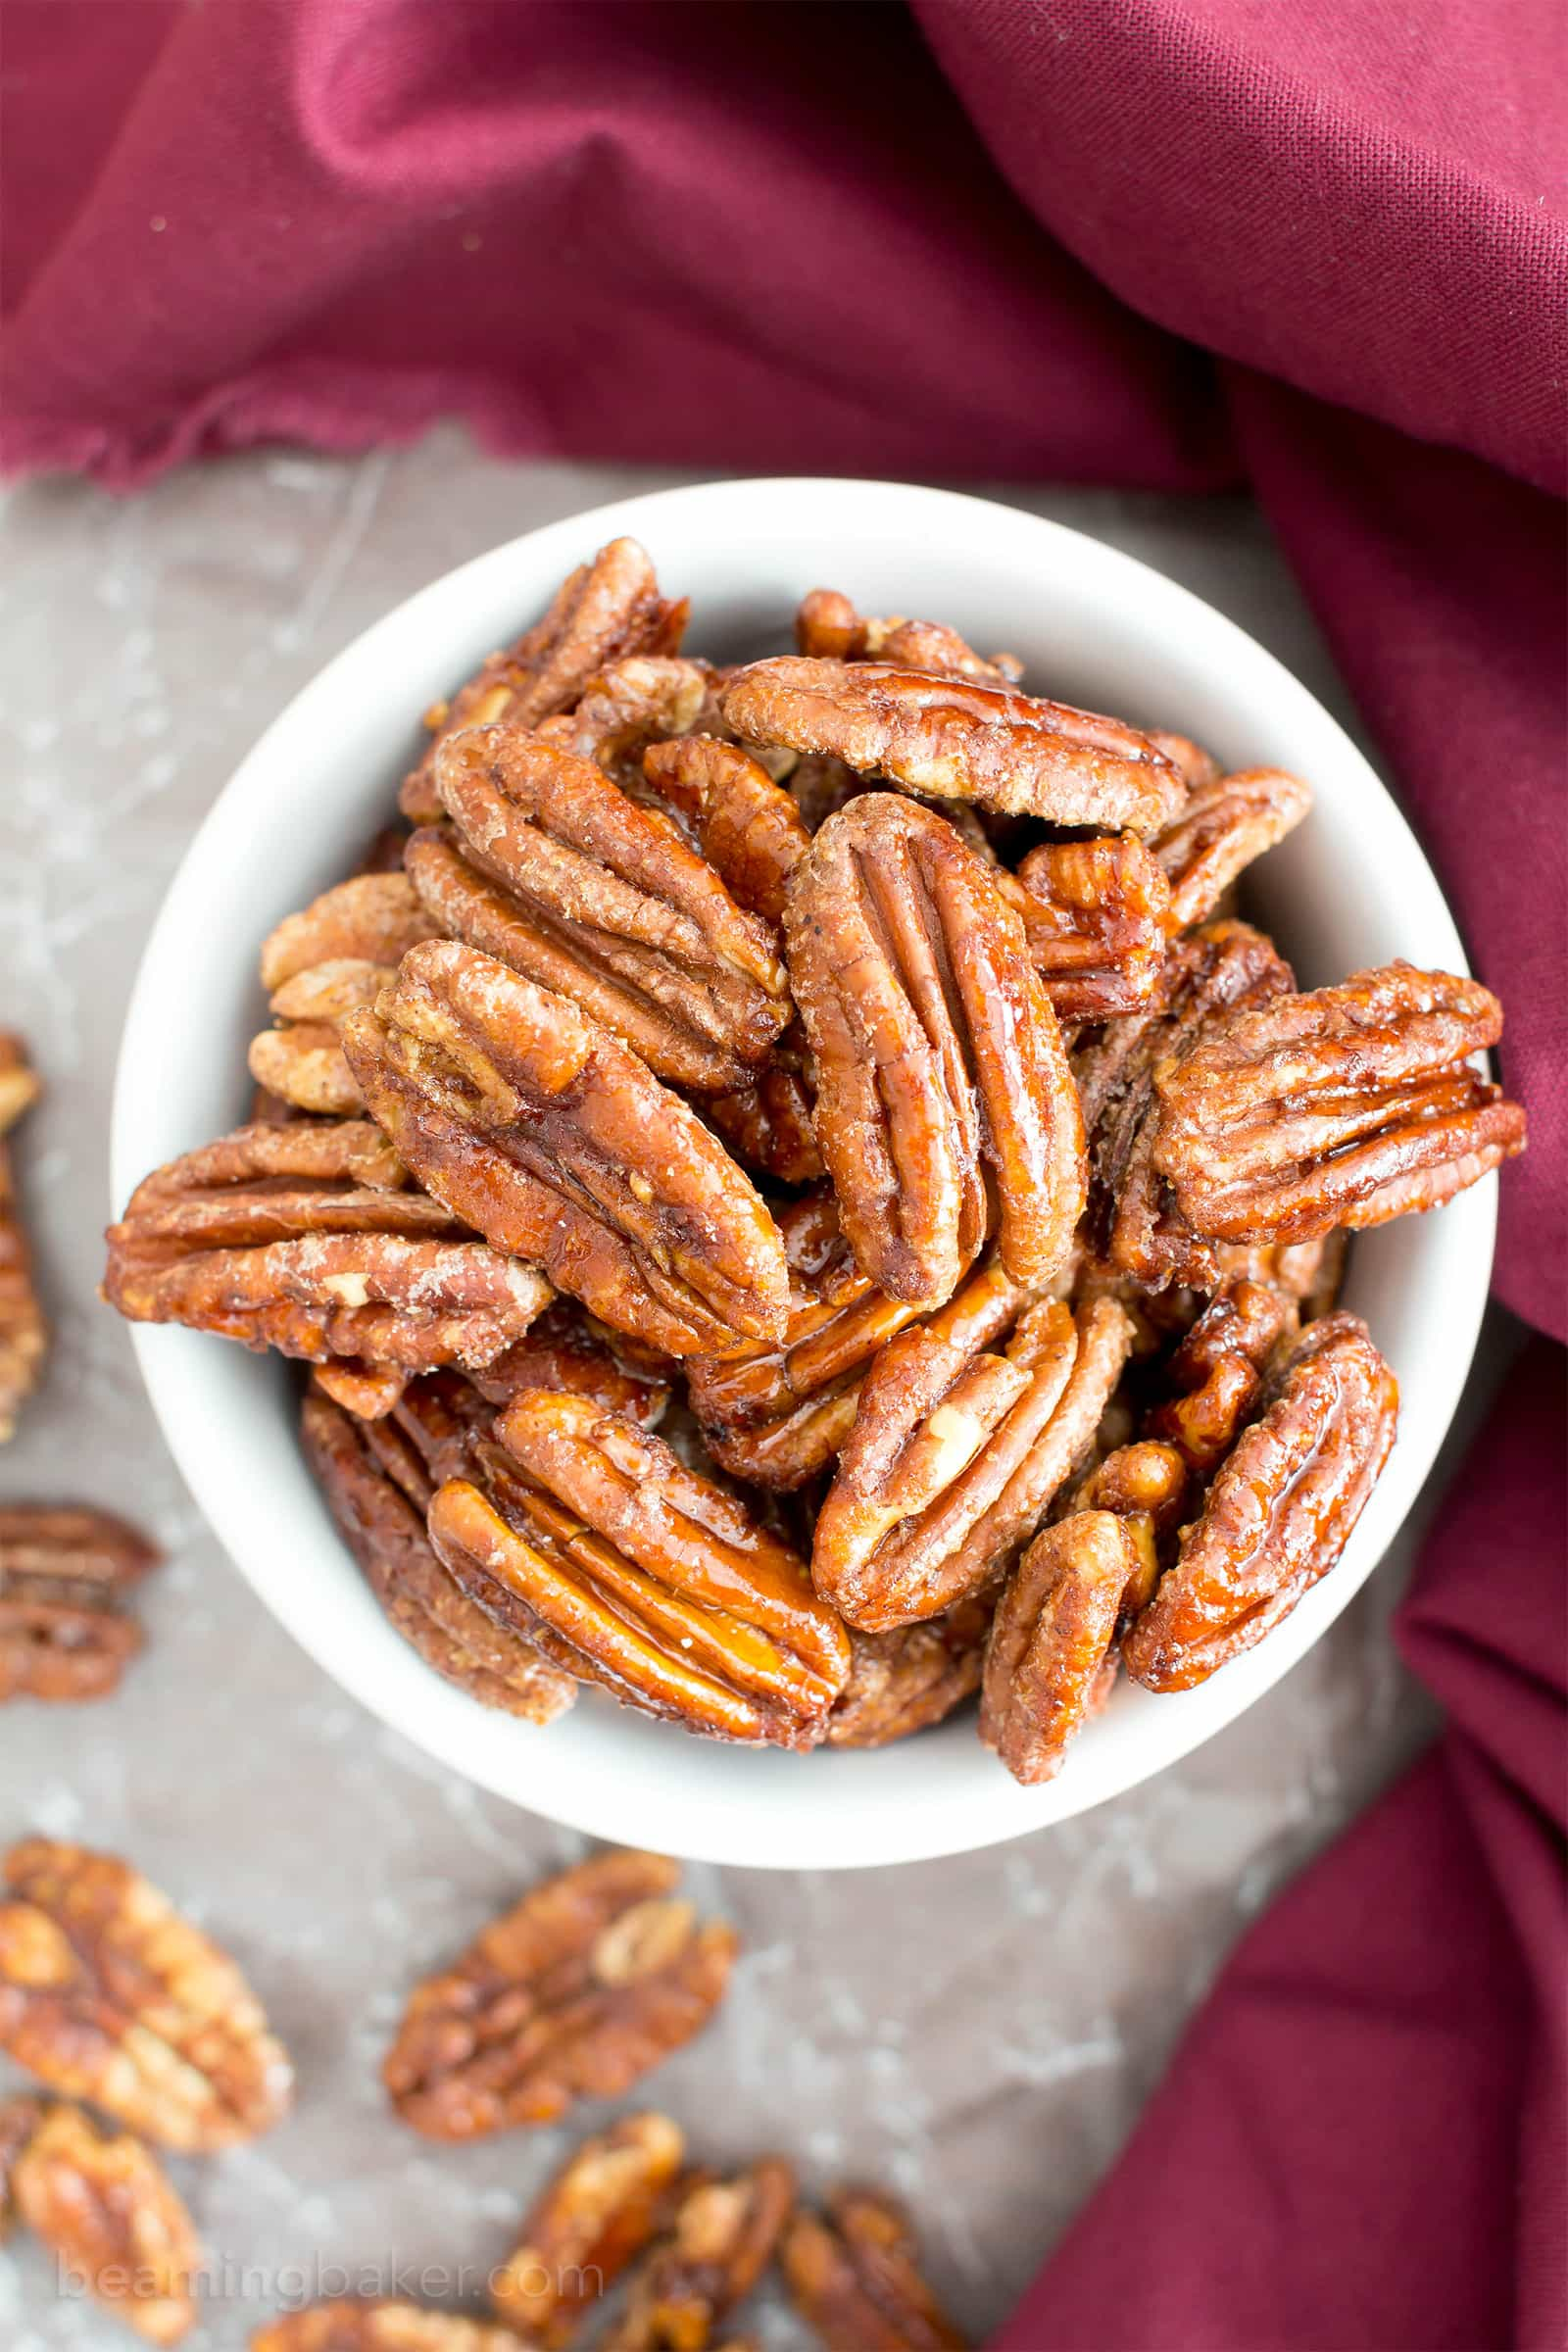 4 Ingredient Oven-Roasted Paleo Candied Pecans (V, GF): learn how to make deliciously glazed candied pecans with this easy, lower sugar recipe. #Paleo #Vegan #Christmas #HolidayRecipes #GlutenFree #DairyFree | Recipe on BeamingBaker.com